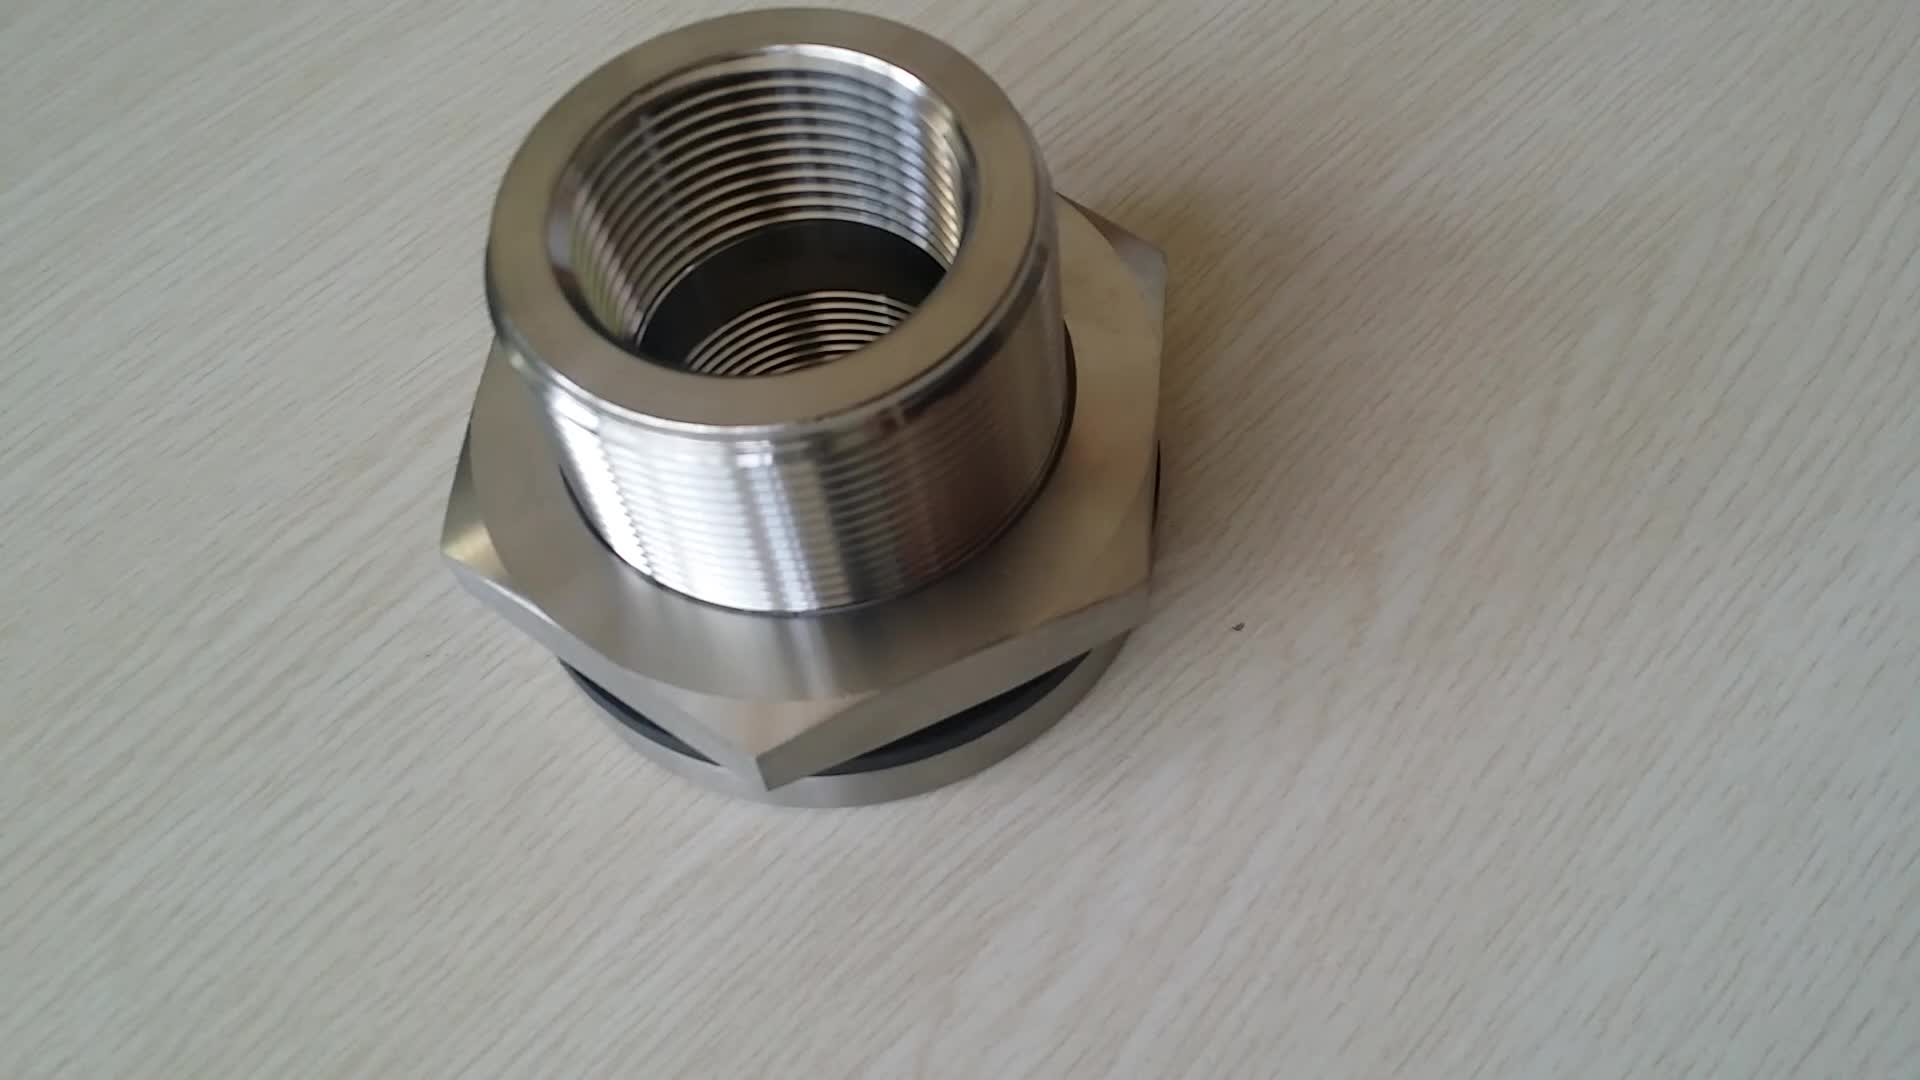 Thread stainless steel through wall pipe fittings